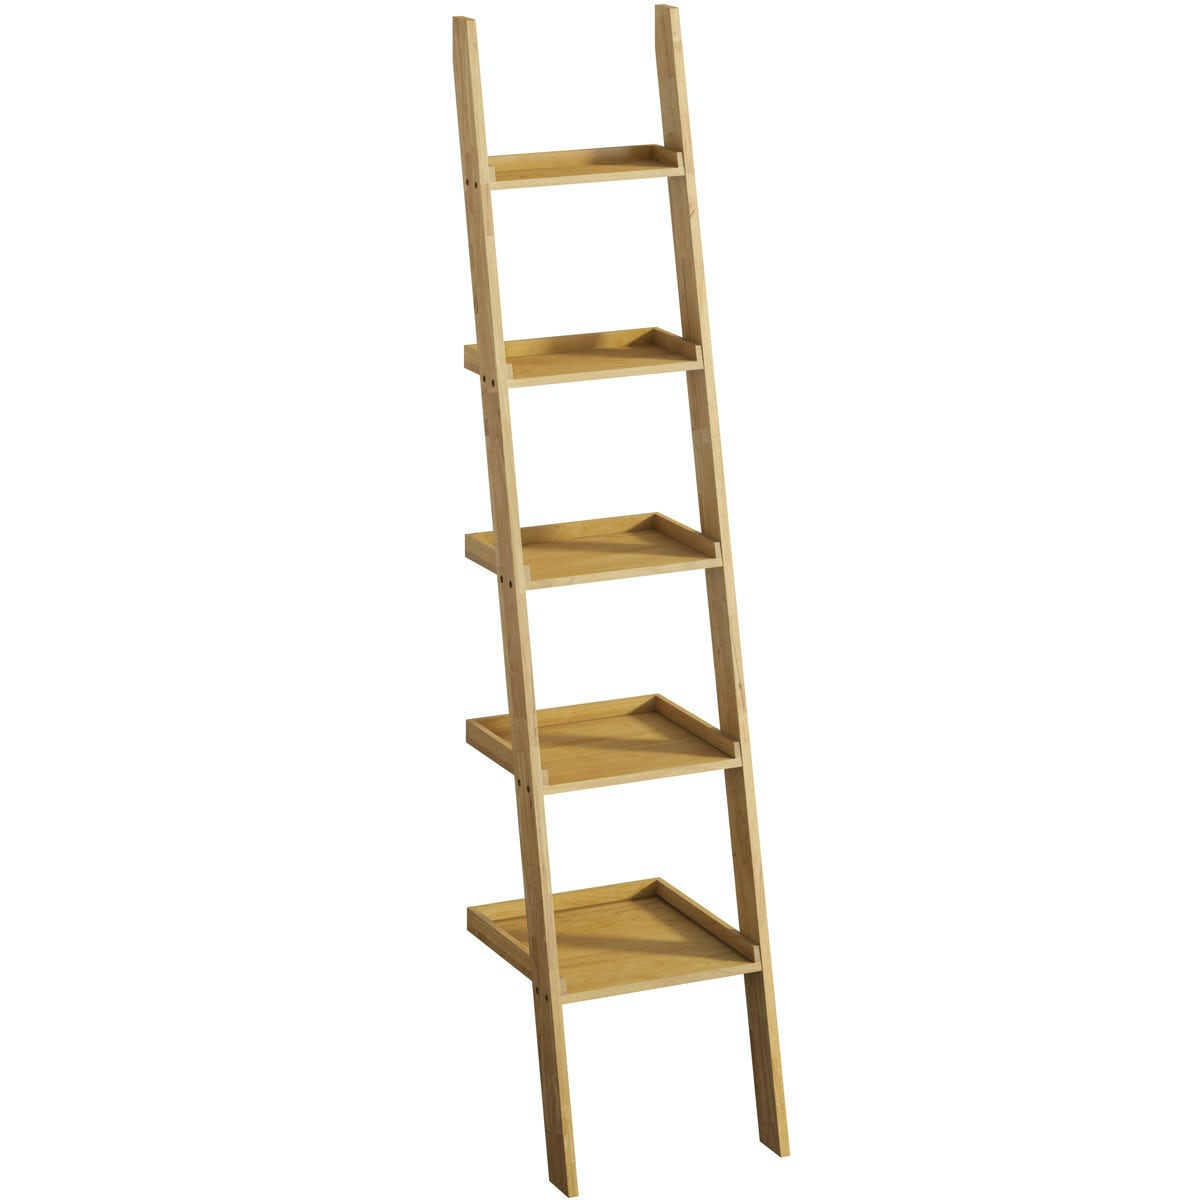 Mode South Bank natural wood ladder shelf